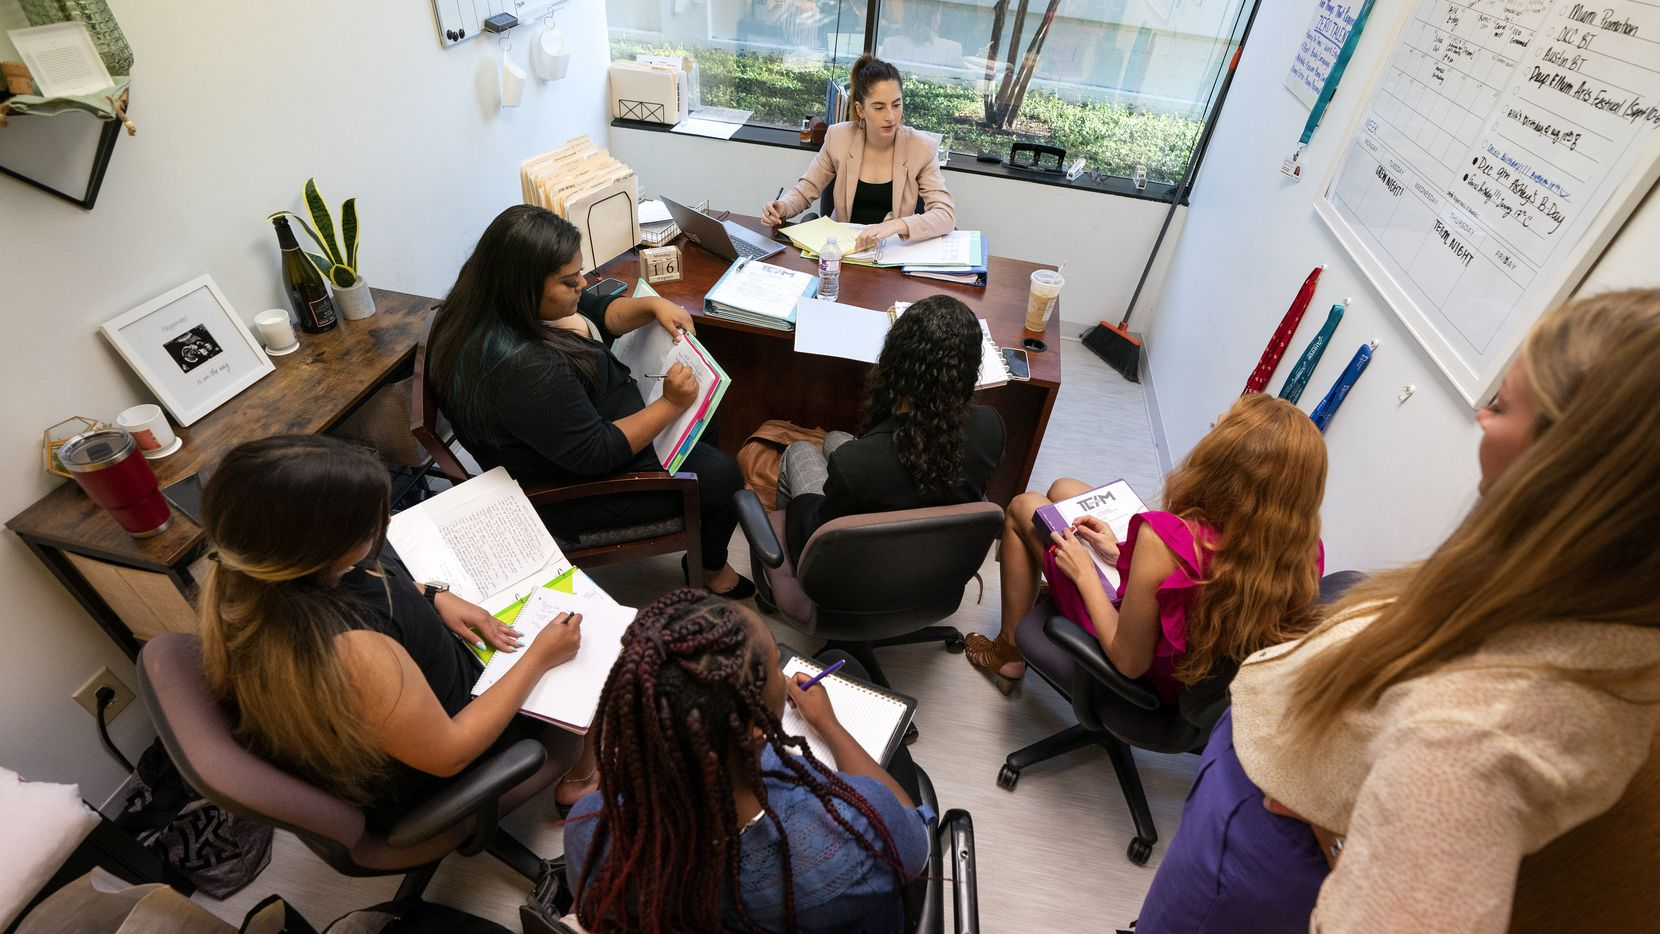 Madison Kitchen, behind desk, leads a meeting in her office at the Lumos Marketing Group in Far North Dallas. Through July, the Dallas-Plano-Irving metro division had recovered nearly 99% of the jobs lost during the pandemic -- well ahead of the national recovery.